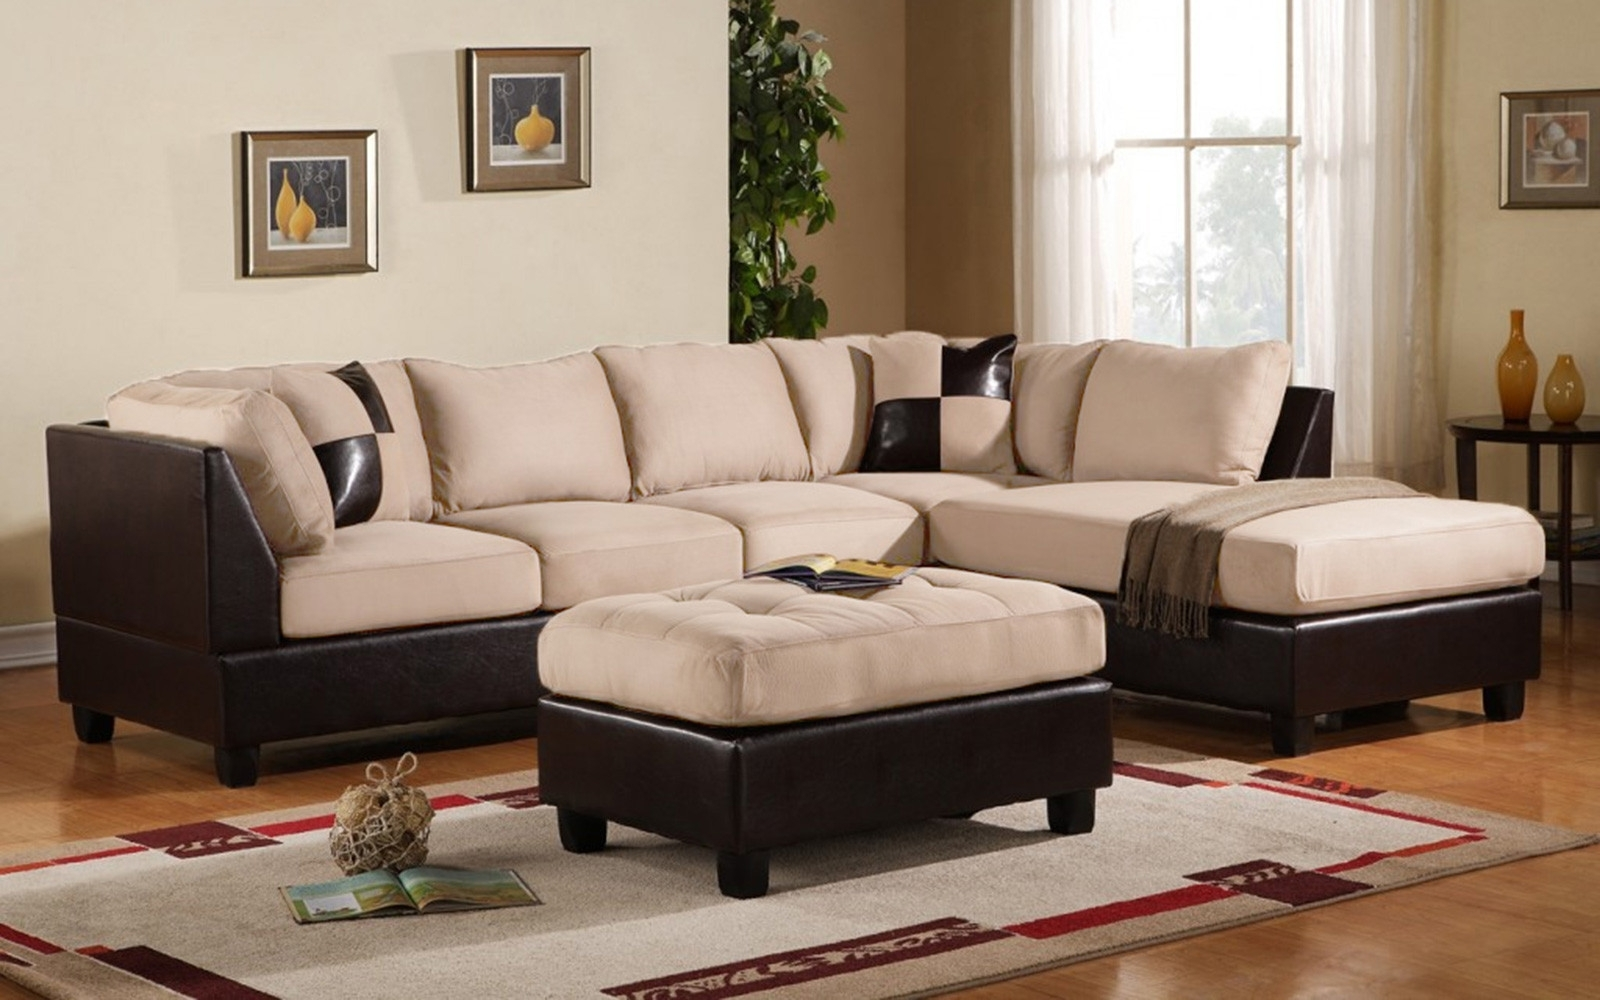 Queens Ny Sectional Sofas Throughout Latest Faux Suede Sectional Sofa – Home And Textiles (View 14 of 20)